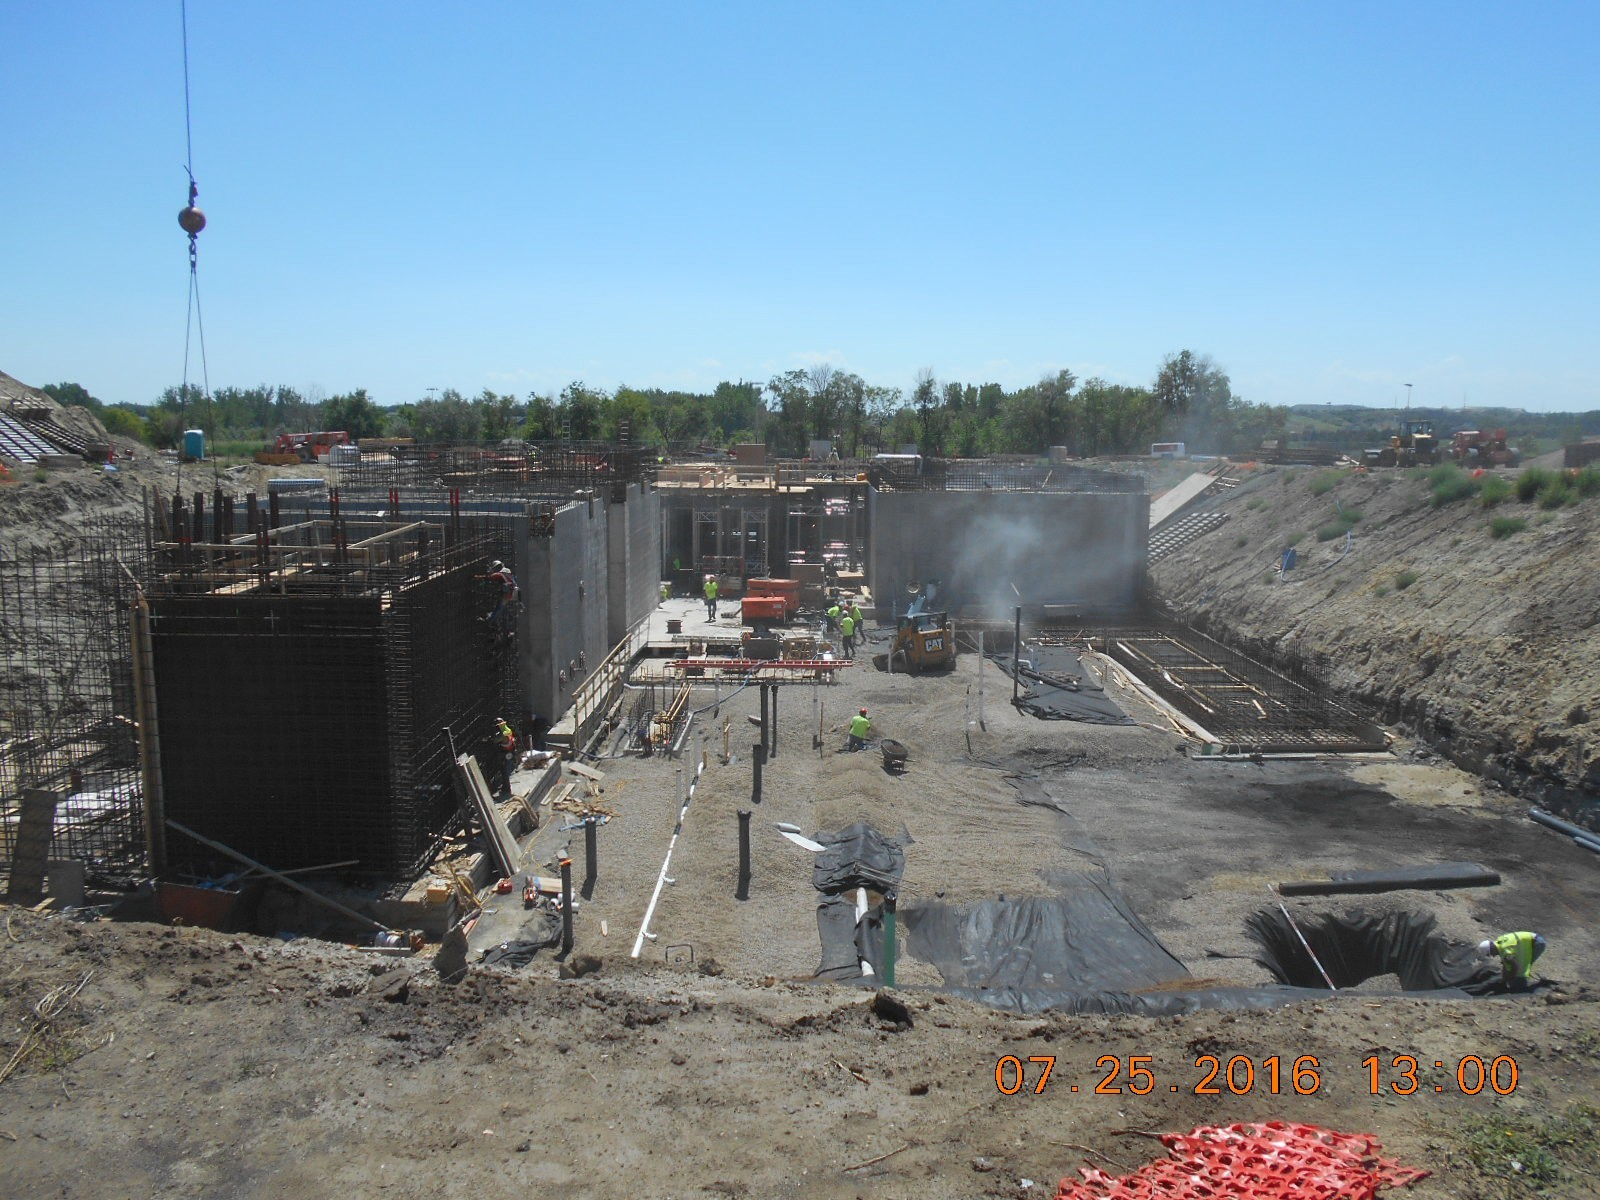 Looking South at the construction site.